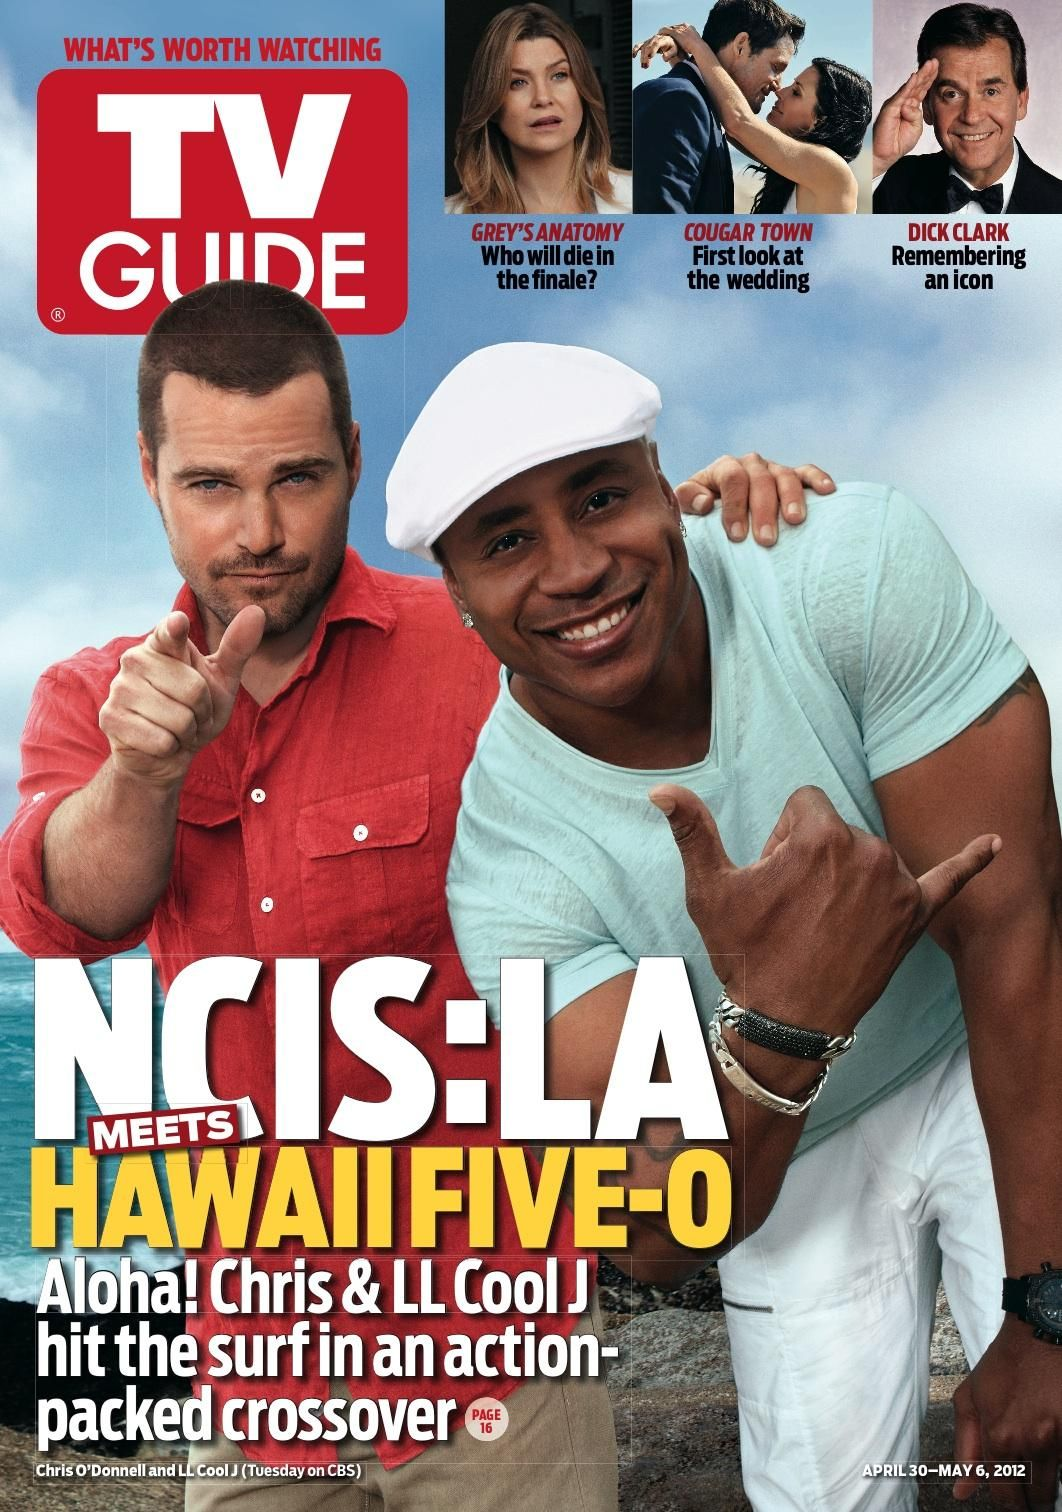 Chis odonnell and ll cool j hit the cover of tv guide